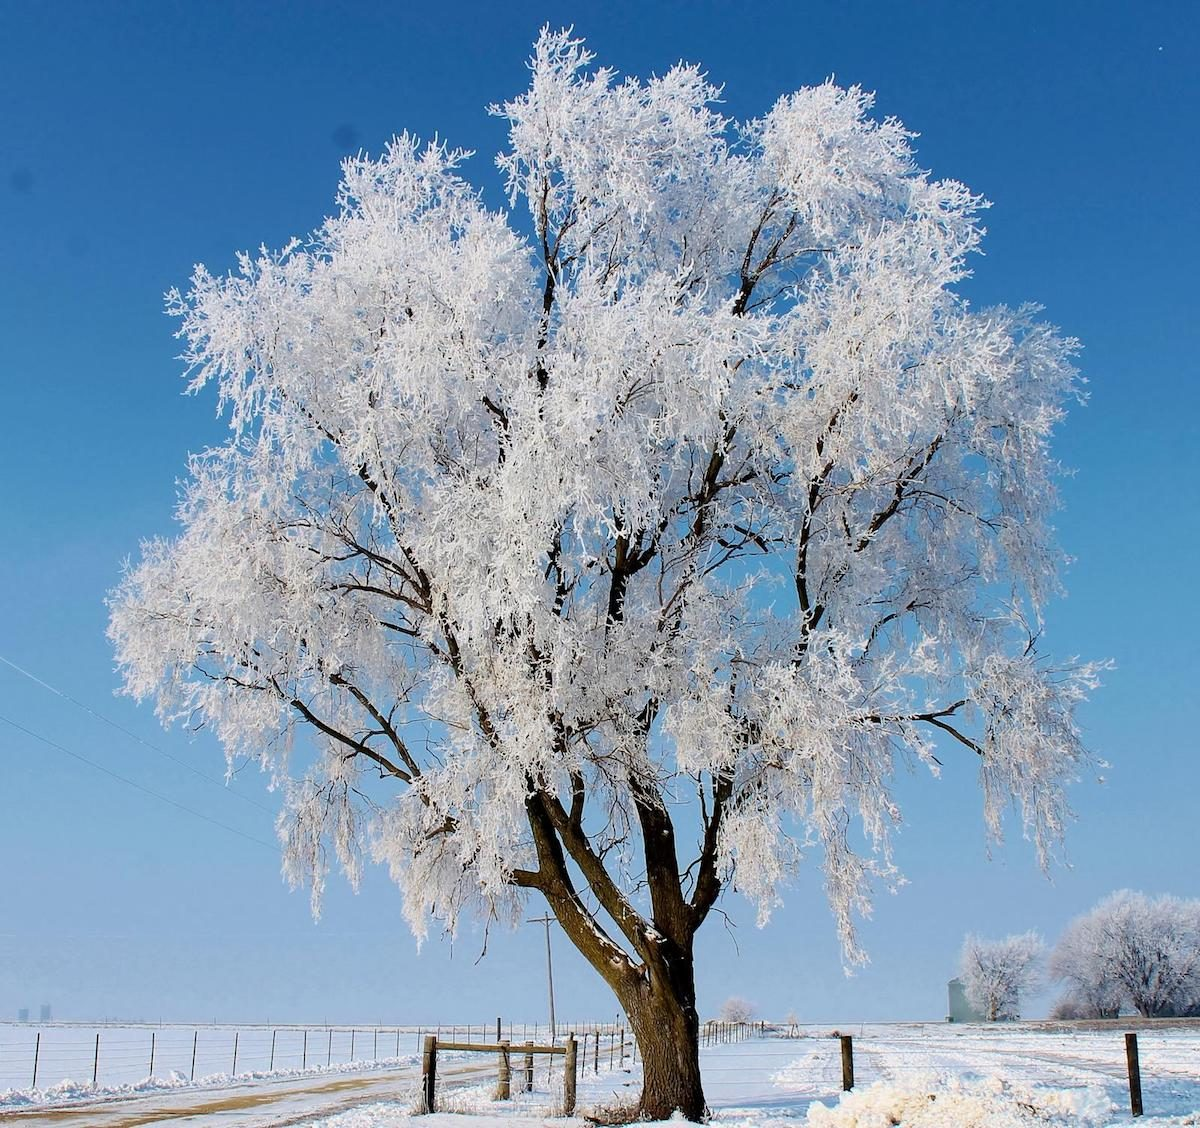 A solitary tree covered in hoarfrost against a blue sky.